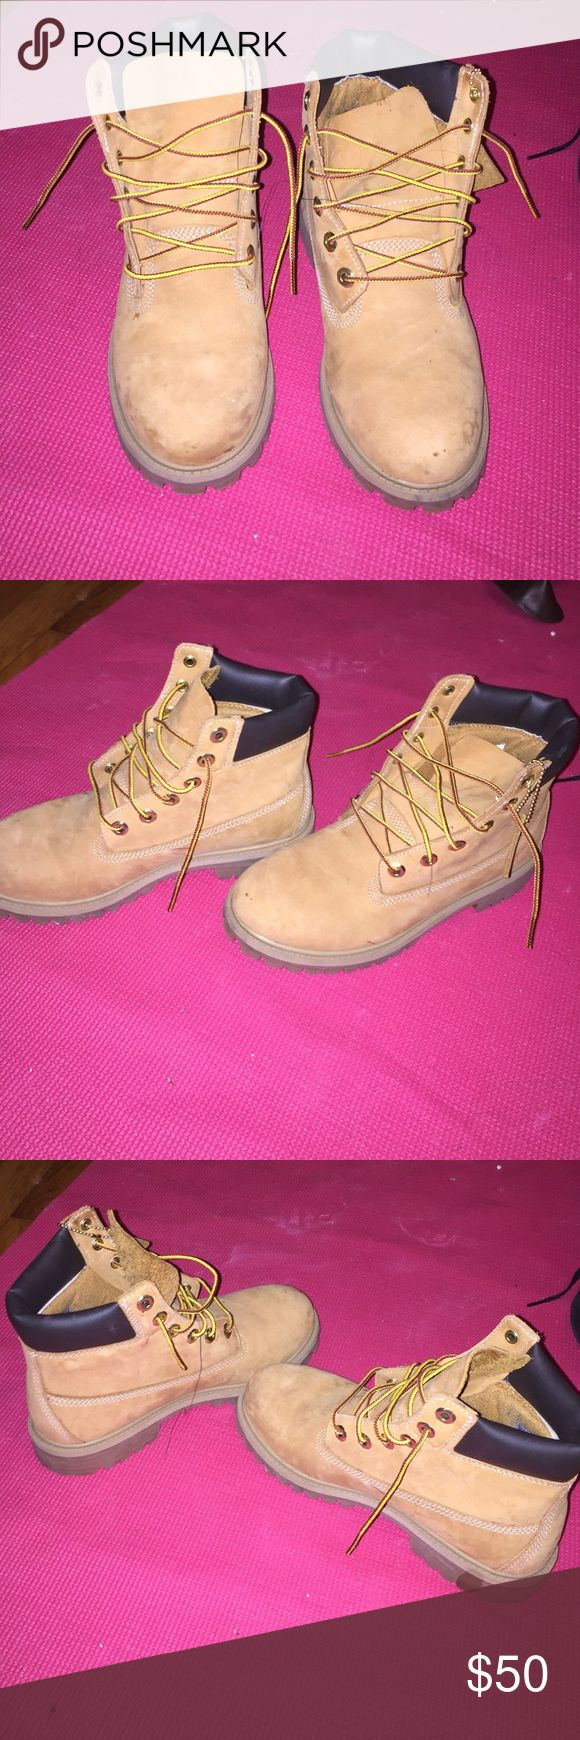 Timberland classic boots Timberland classic boots size 5.5 Timberland Shoes Winter & Rain Boots